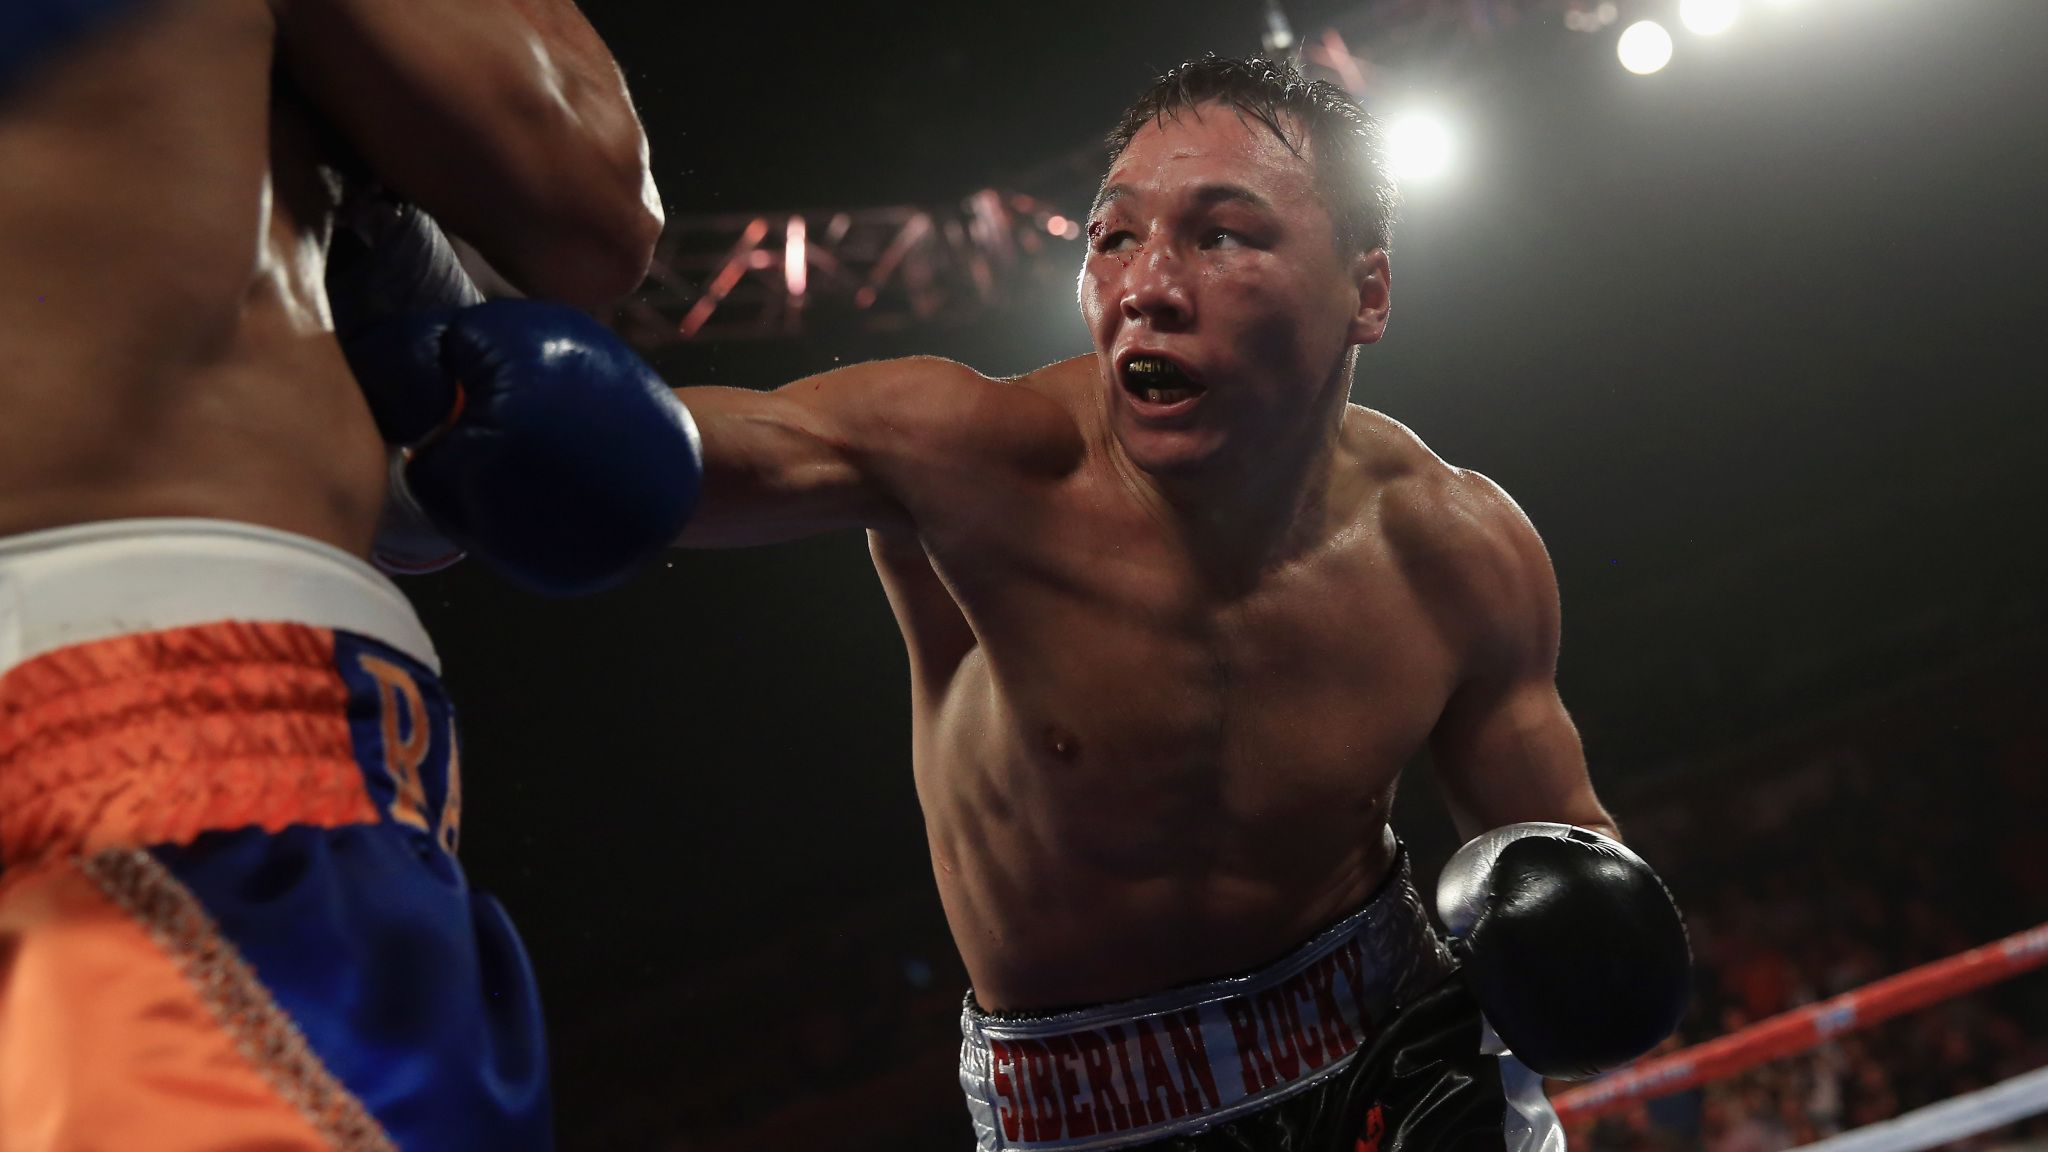 Provodnikov matthysse betting odds belmont stakes 2021 betting line